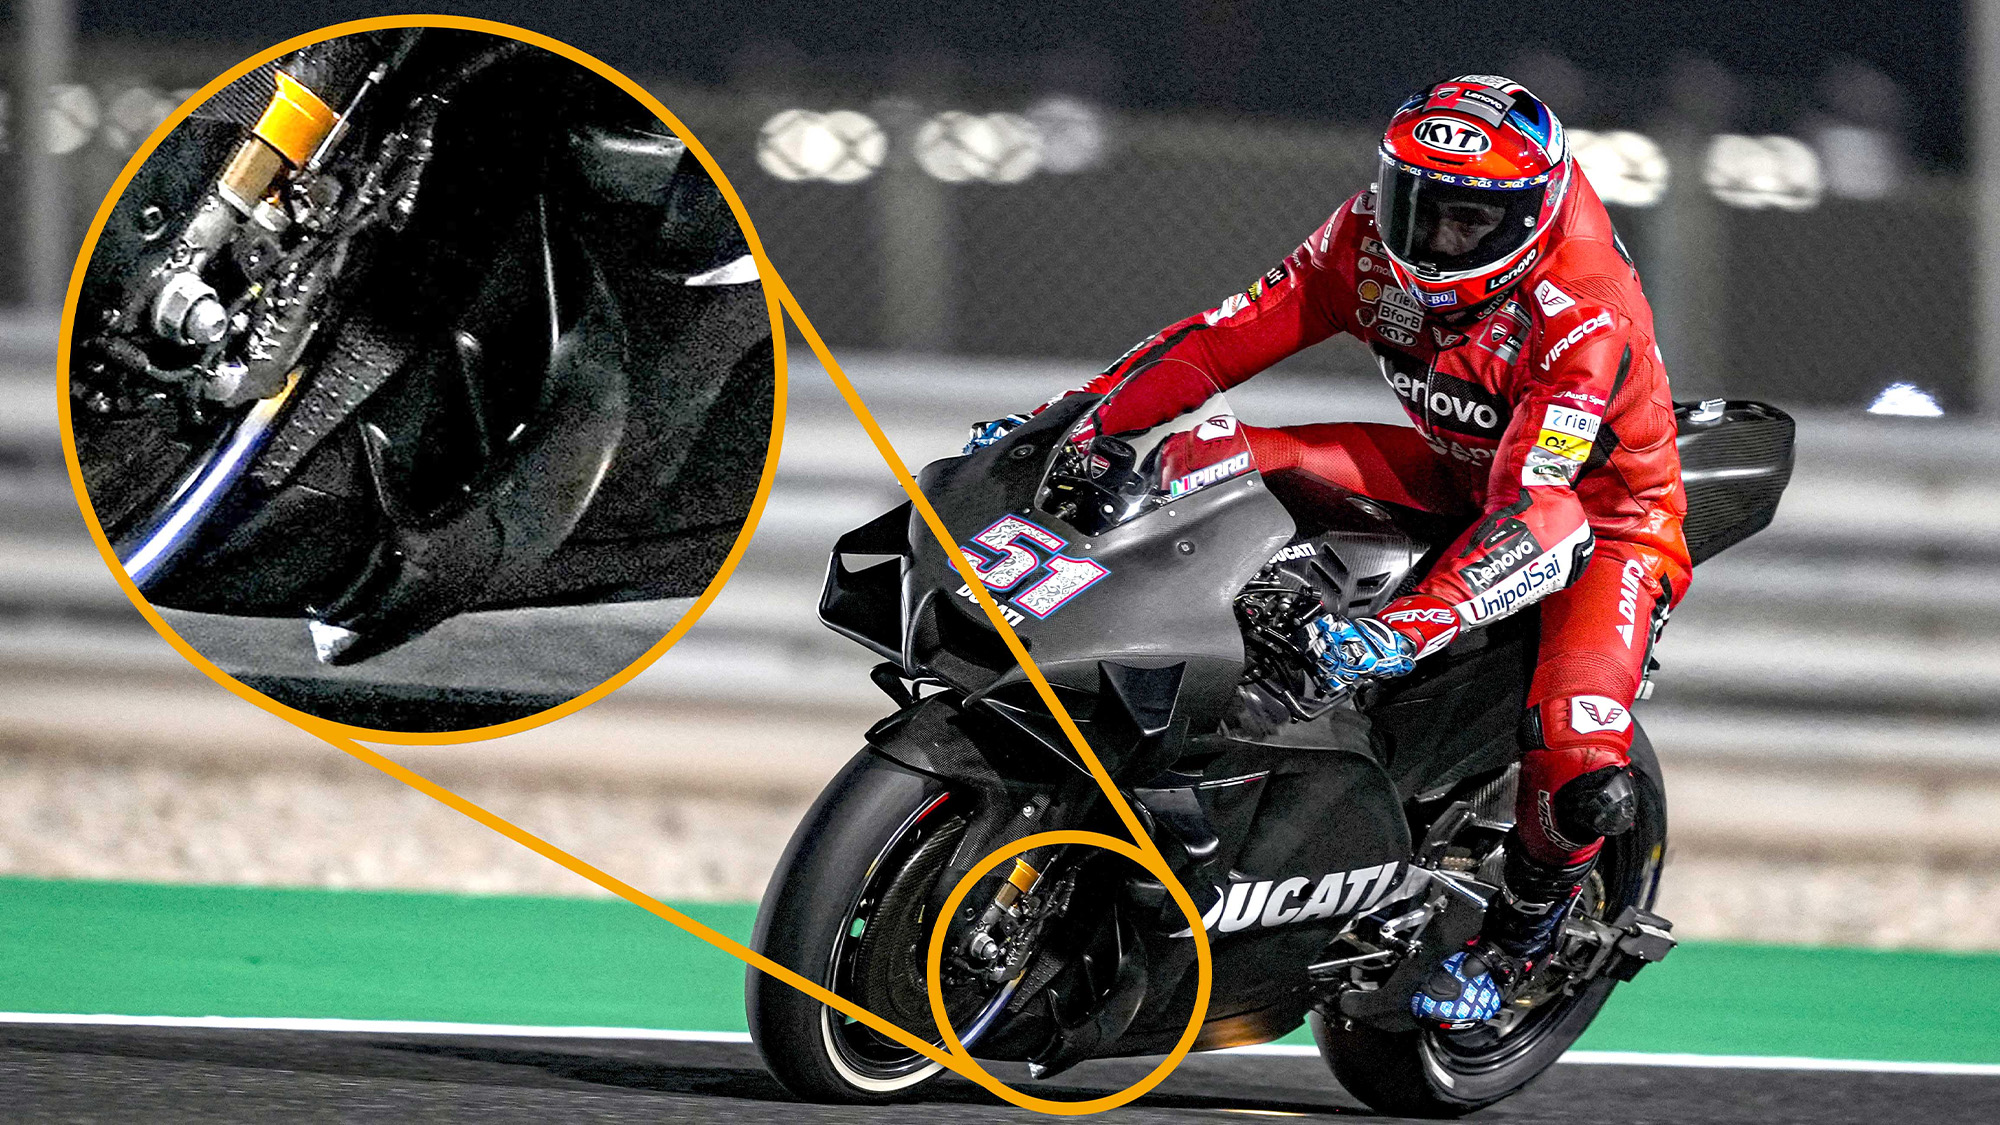 Is Ducati using ground effect for more grip in MotoGP?